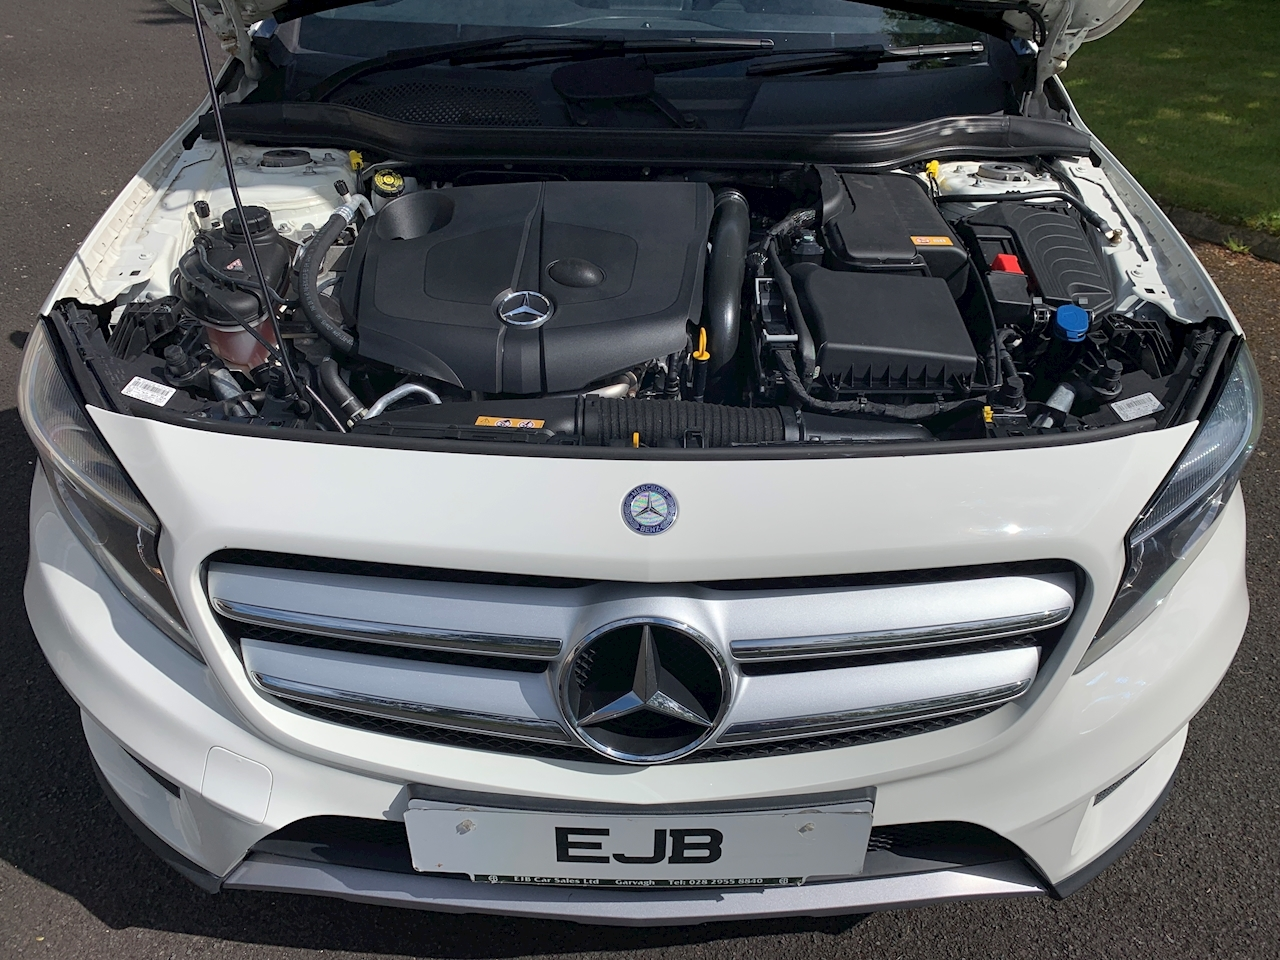 Mercedes-Benz Gla-Class 200 D Amg Line [136] 2.1 5dr Estate Manual Diesel